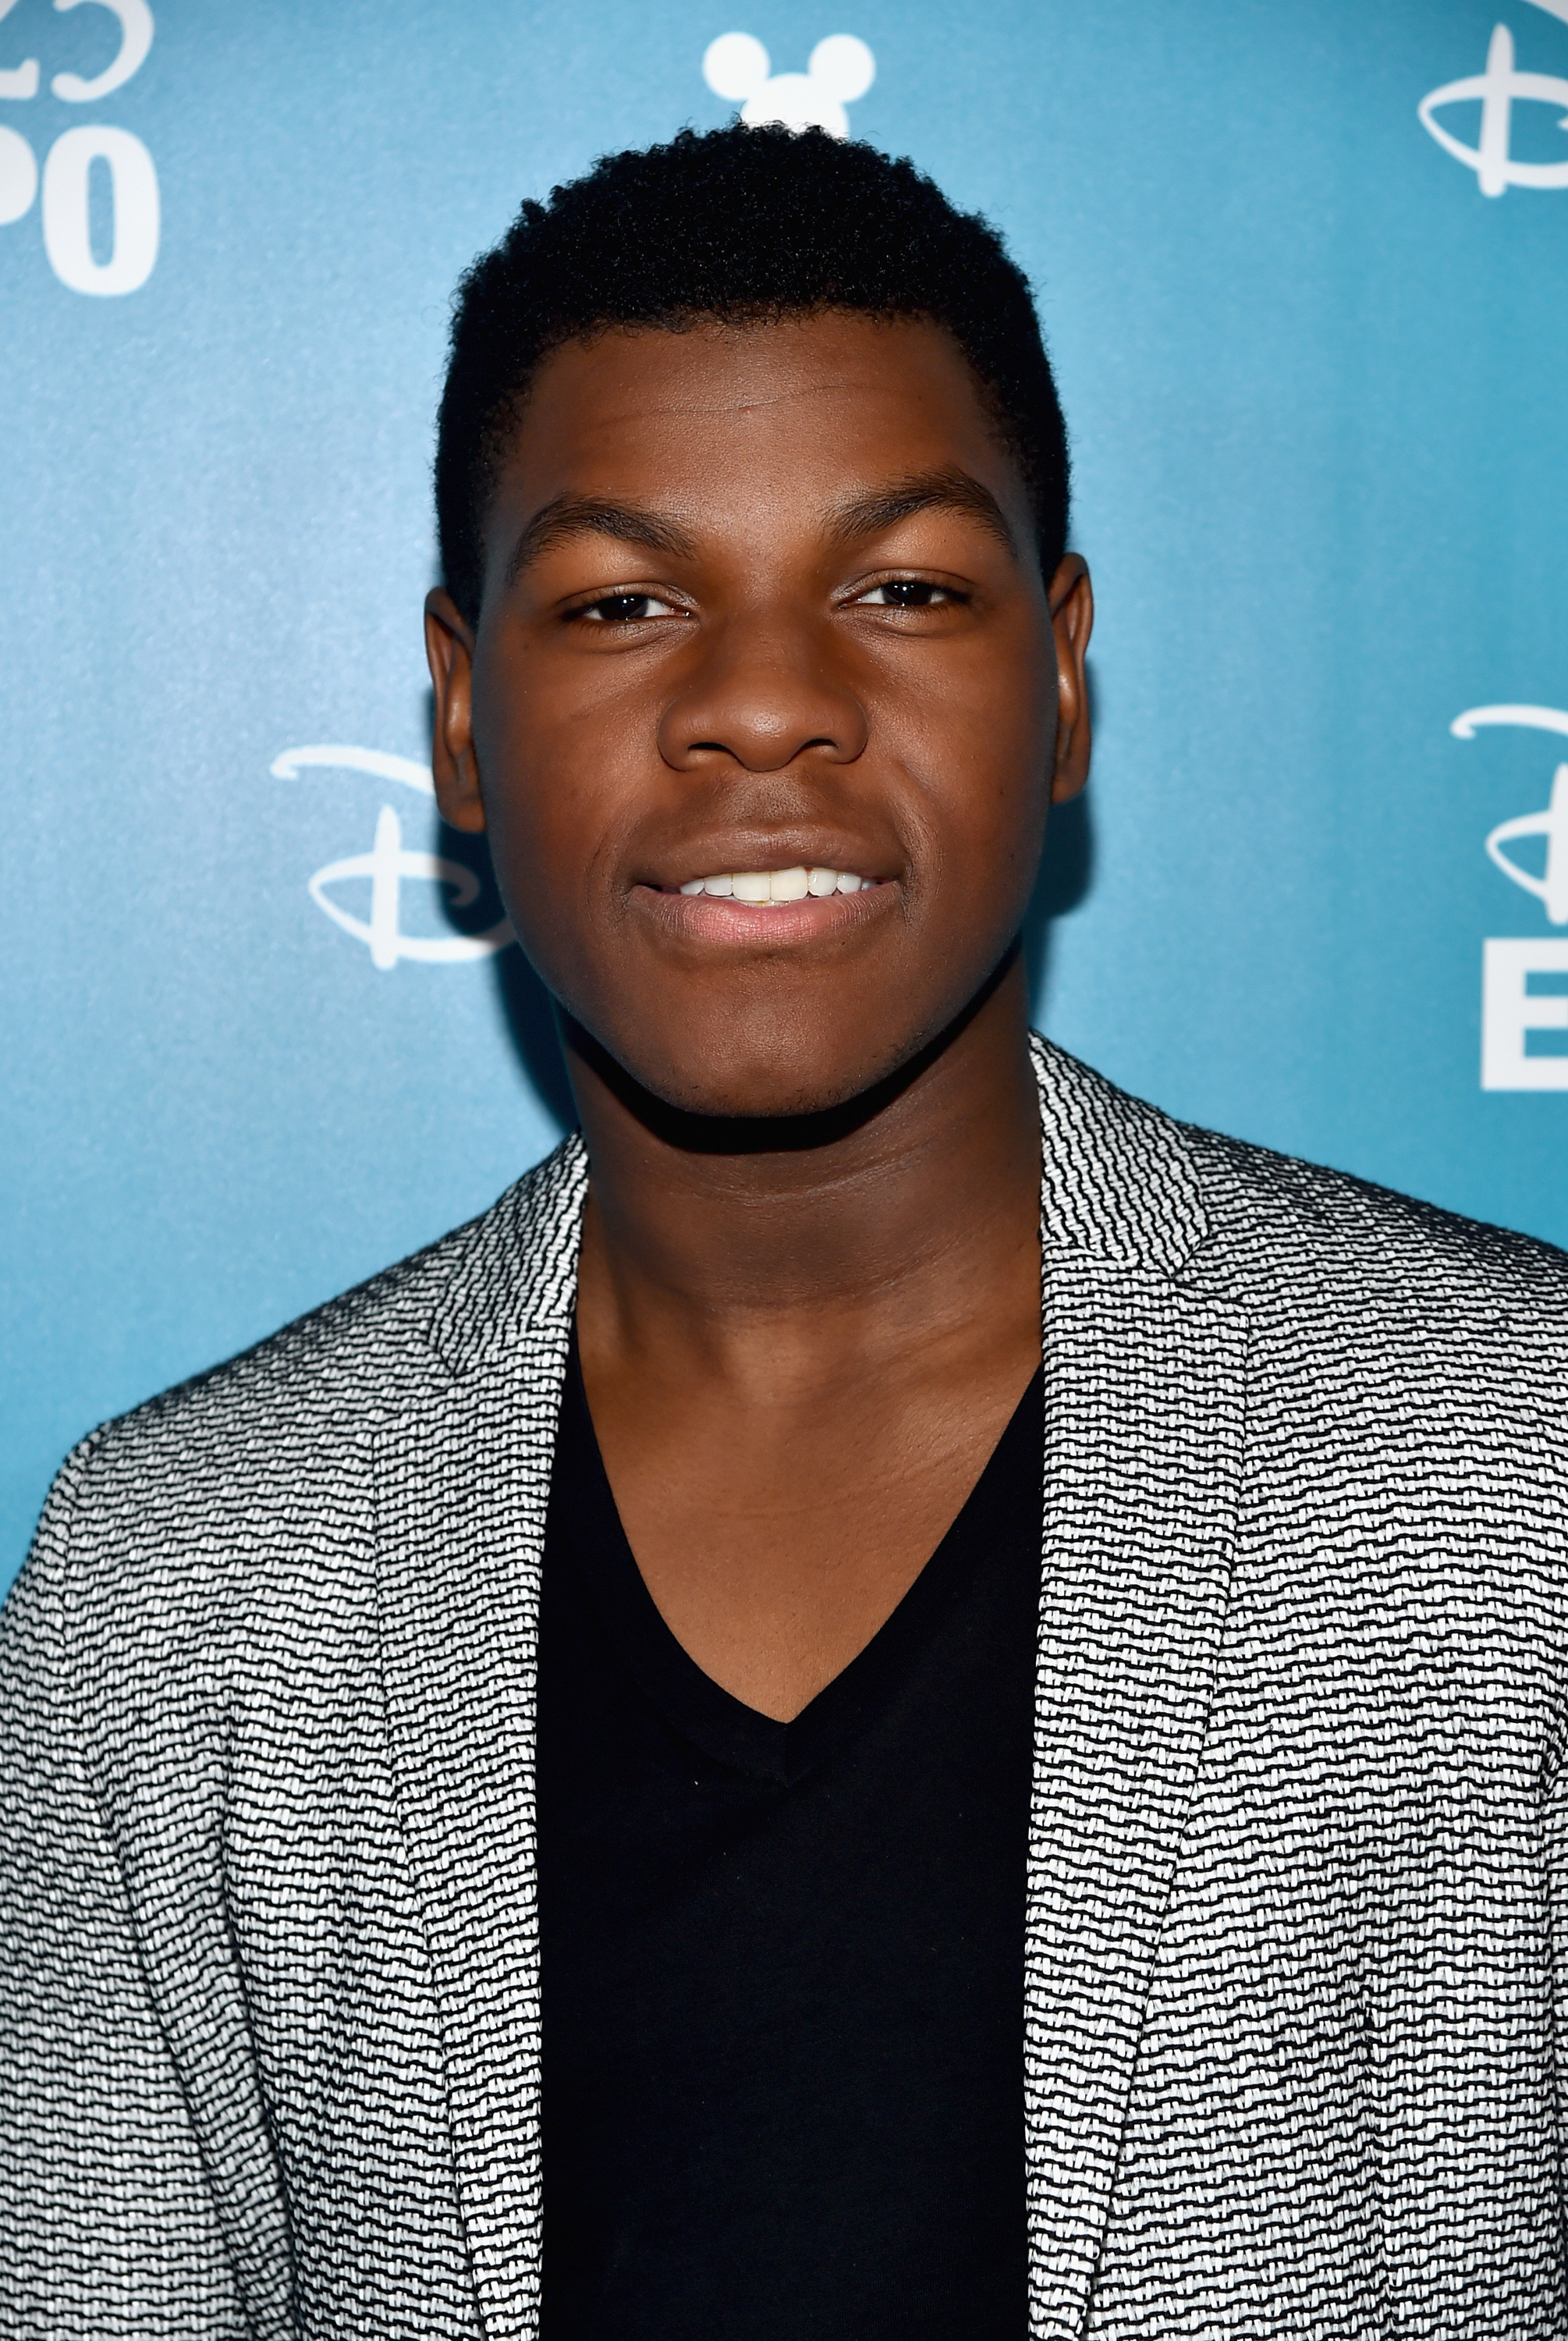 John-Boyega-of-'Star-Wars-The-Force-Awakens'-backstage-at-the-presentation-for-'Worlds-Galaxies-and-Universes-Live-Action-at-The-Walt-Disney-Studios'-presentation-at-Disney's-D23-EXPO-2015-in-Anaheim-Calif.-Aug.-15-2015